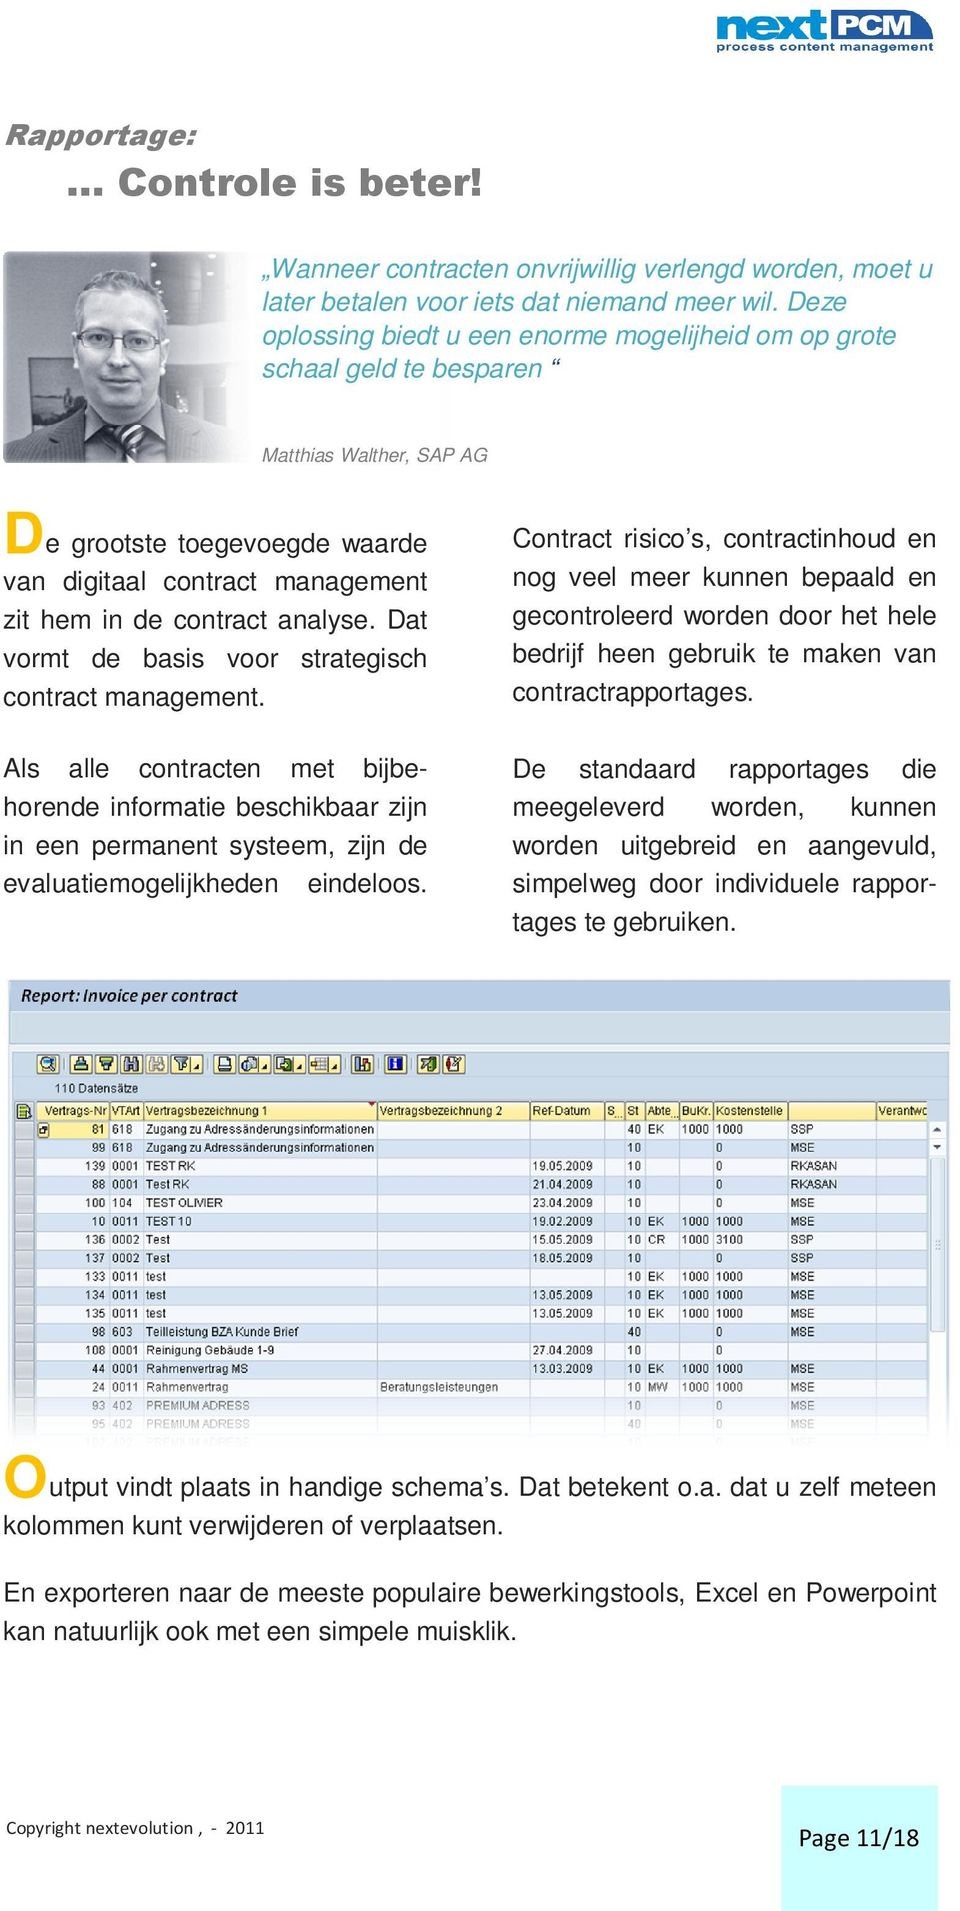 analyse. Dat vormt de basis voor strategisch contract management.